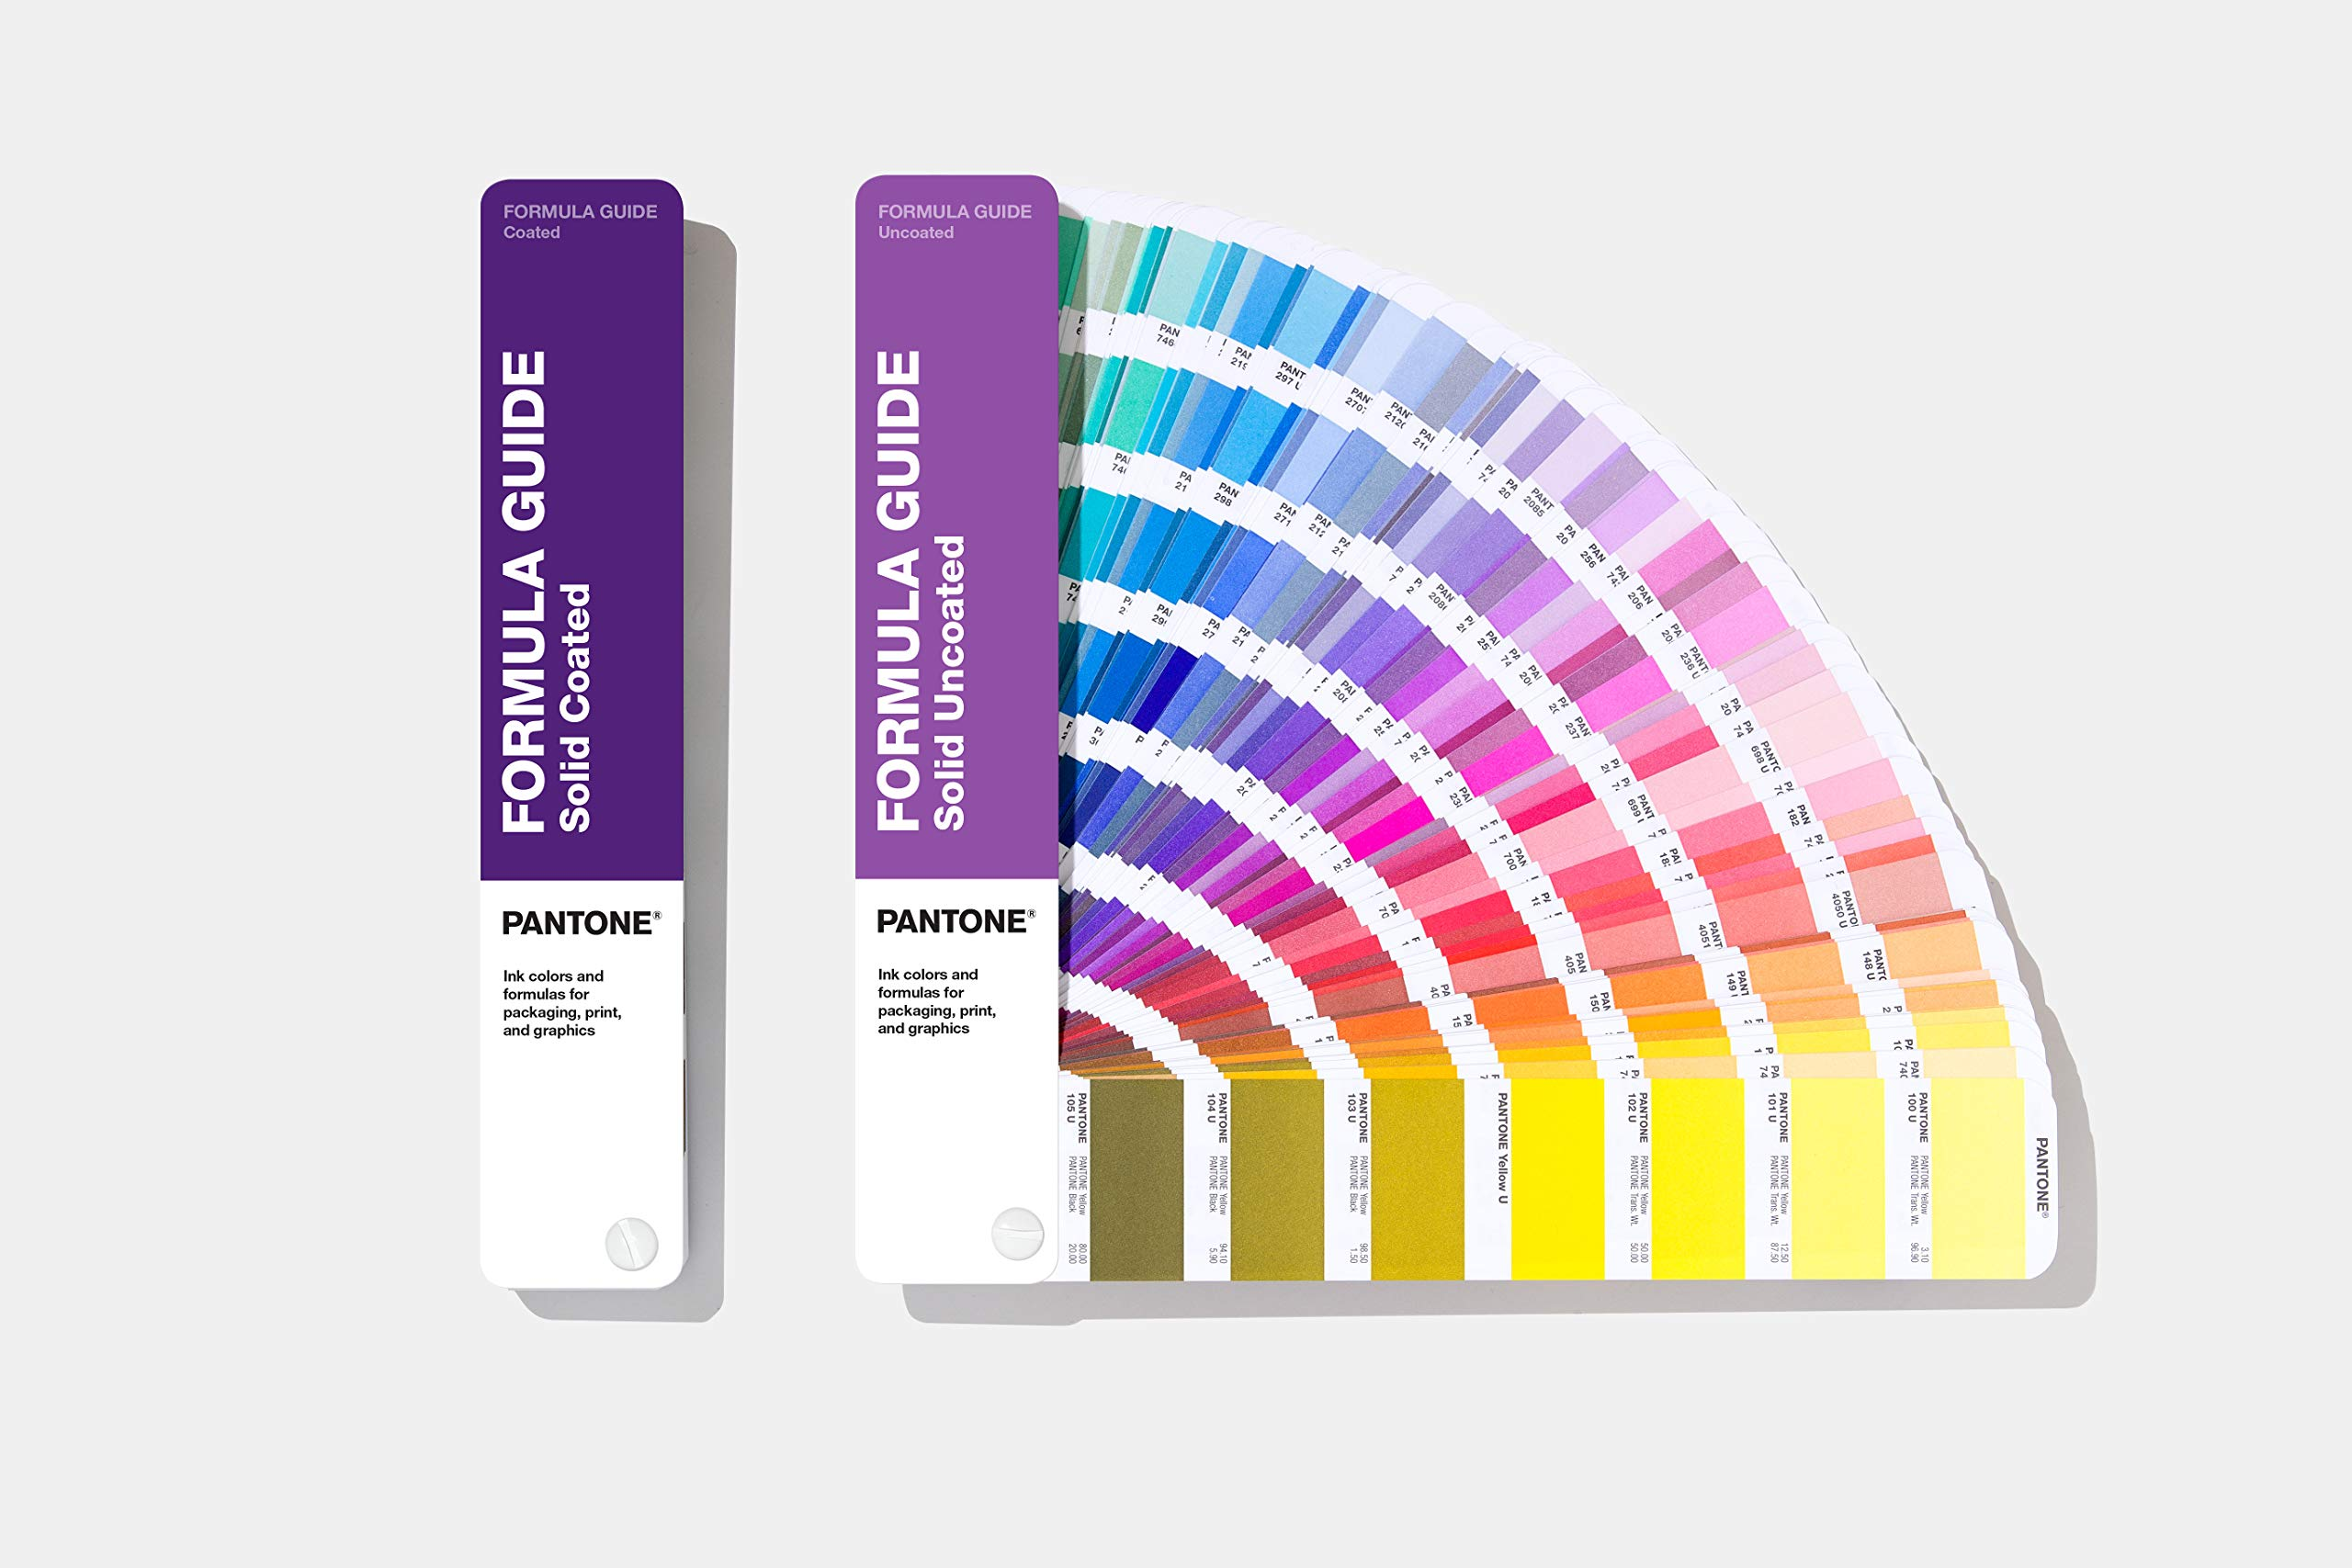 Pantone GP1601A Coated and Uncoated Formula Guide - 2019 Edition by Pantone